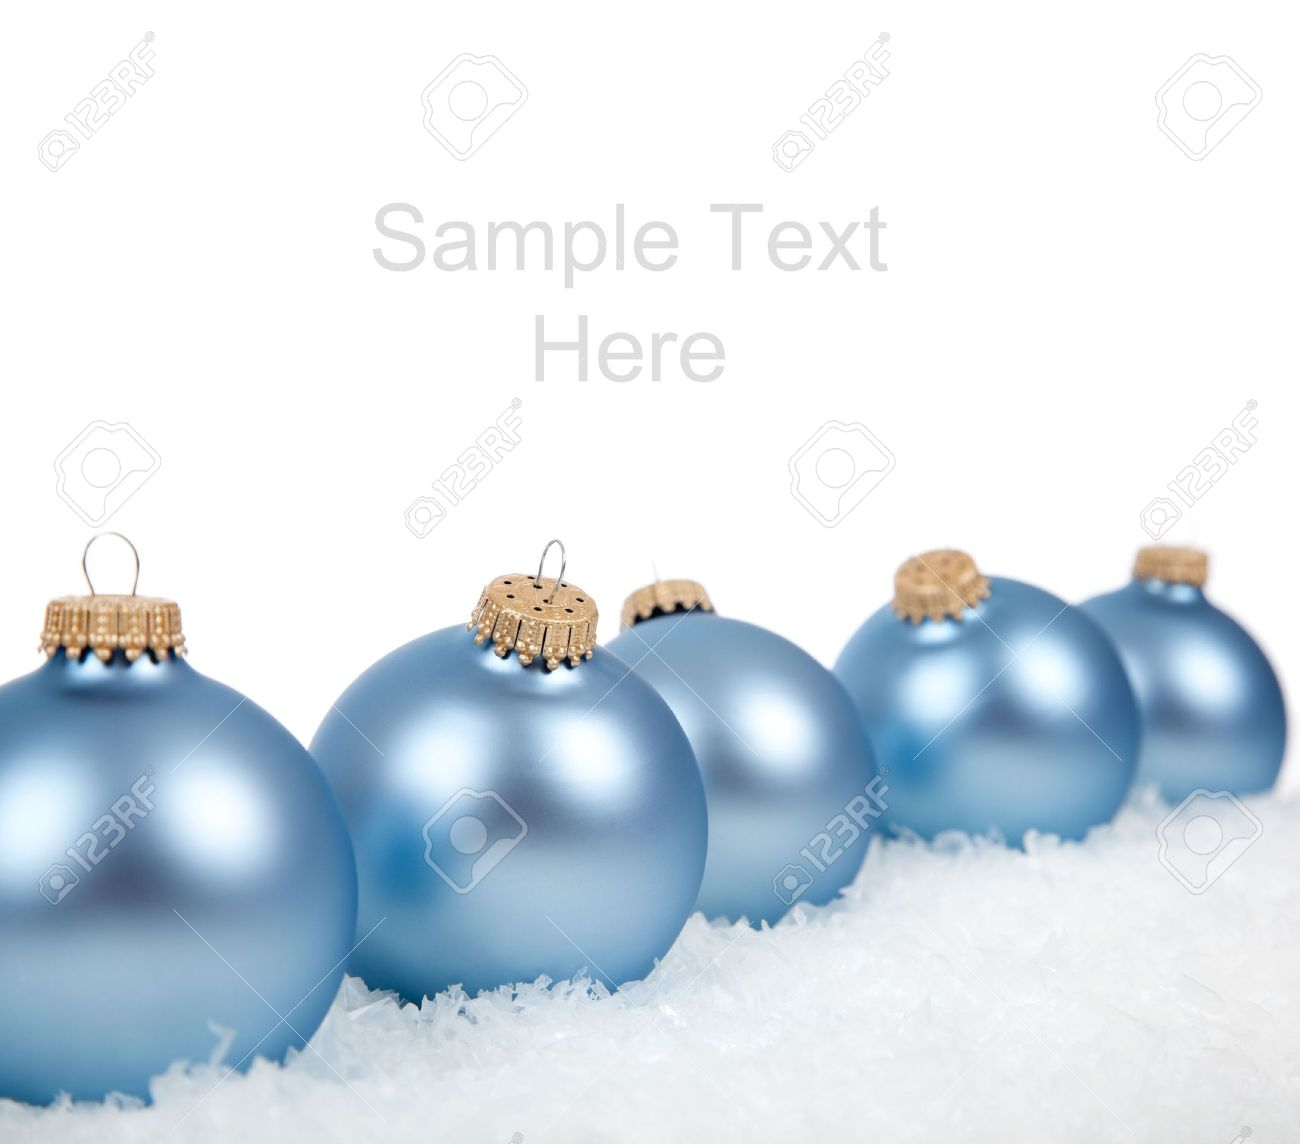 Baby Blue Christmas Ornaments Baubles On A White Background With